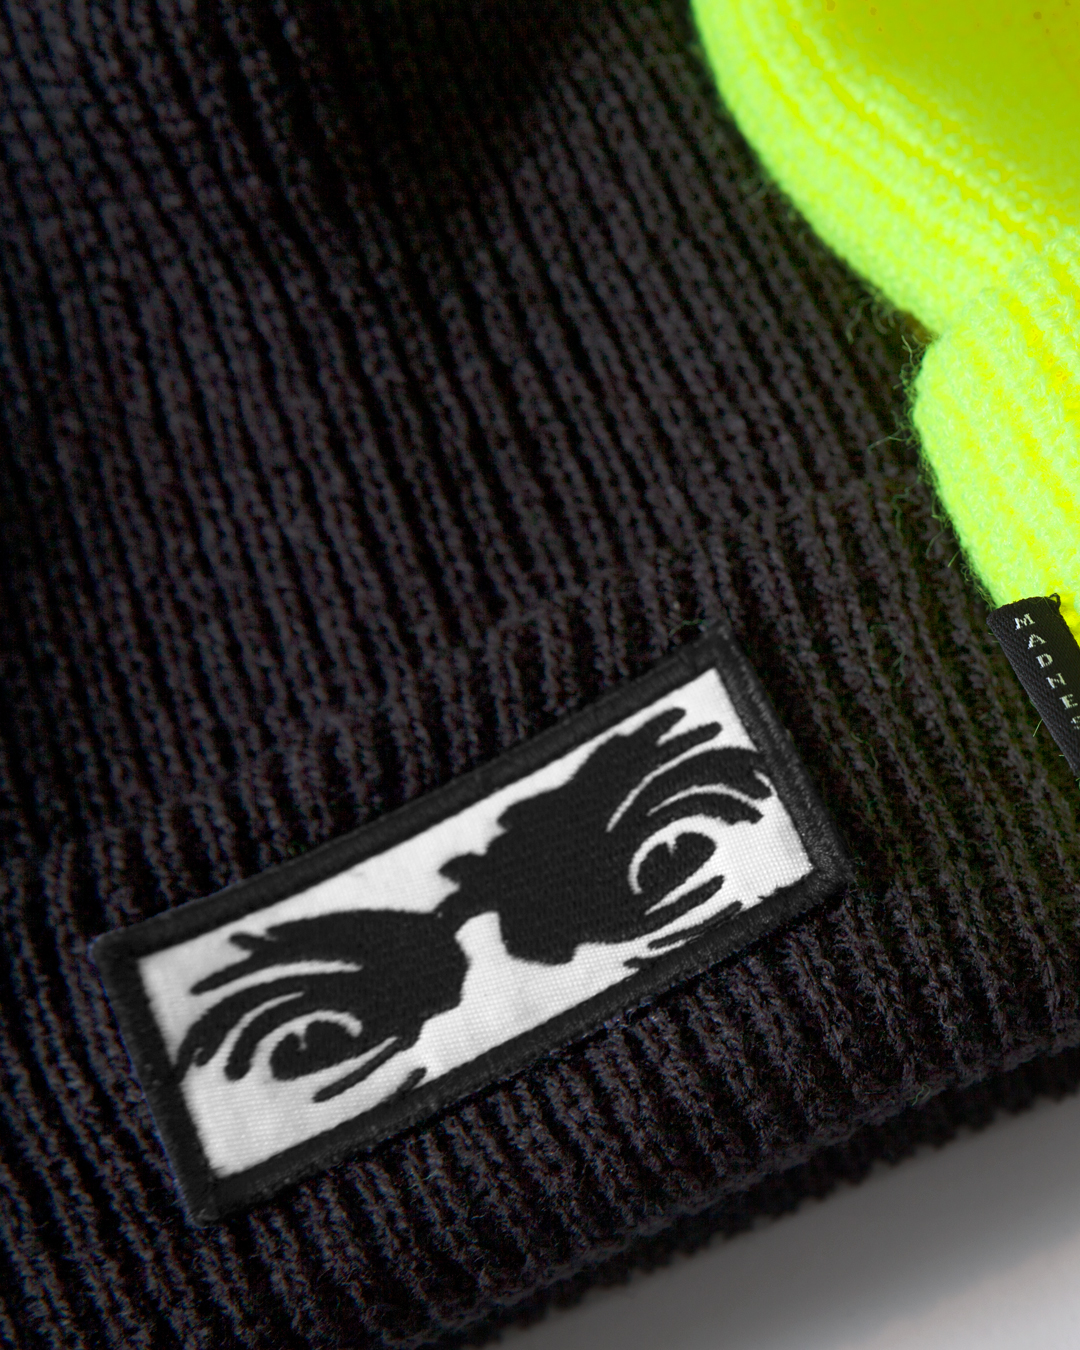 Madness-skateboards-Apparel-1350-BEANIE-1.jpg